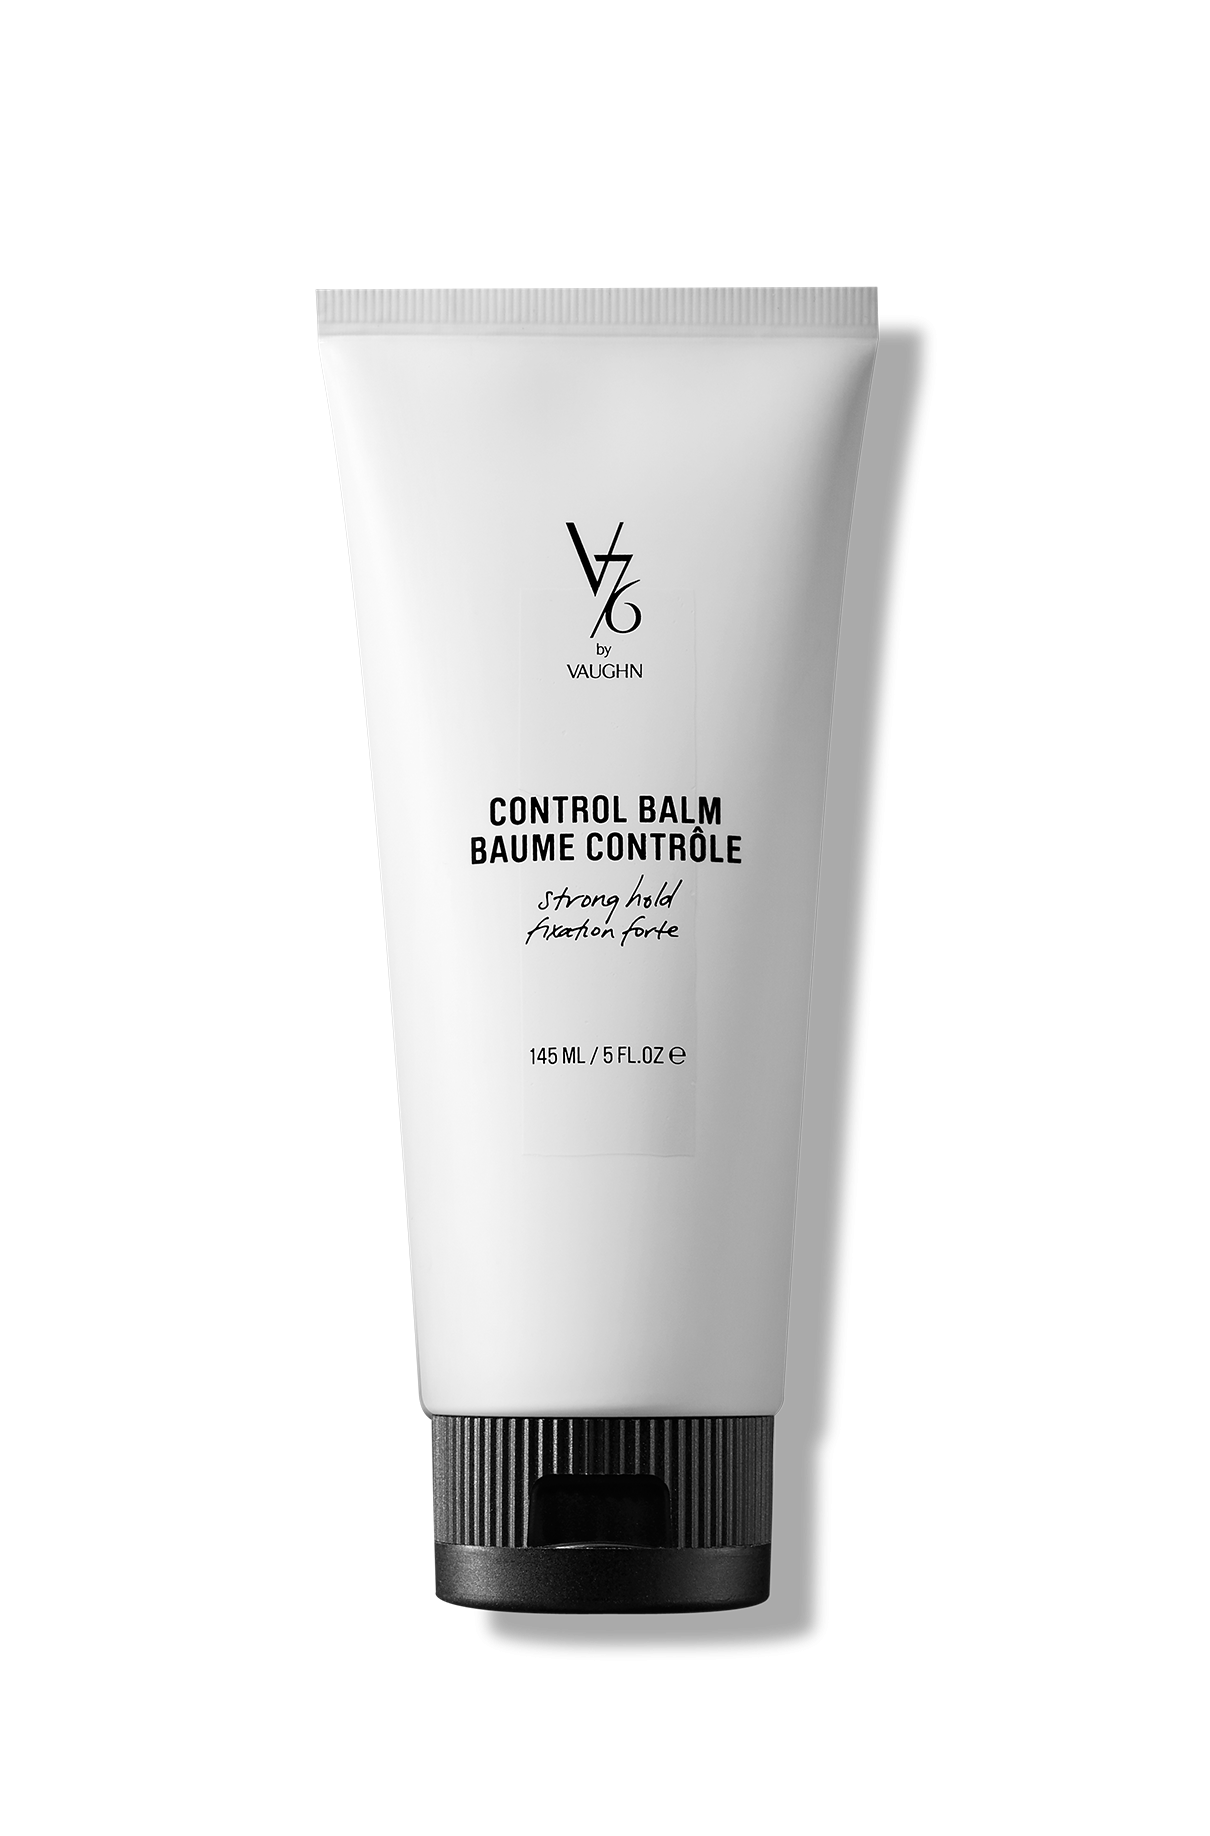 V76 by Vaughn  Control Balm, 5 oz. $20.00